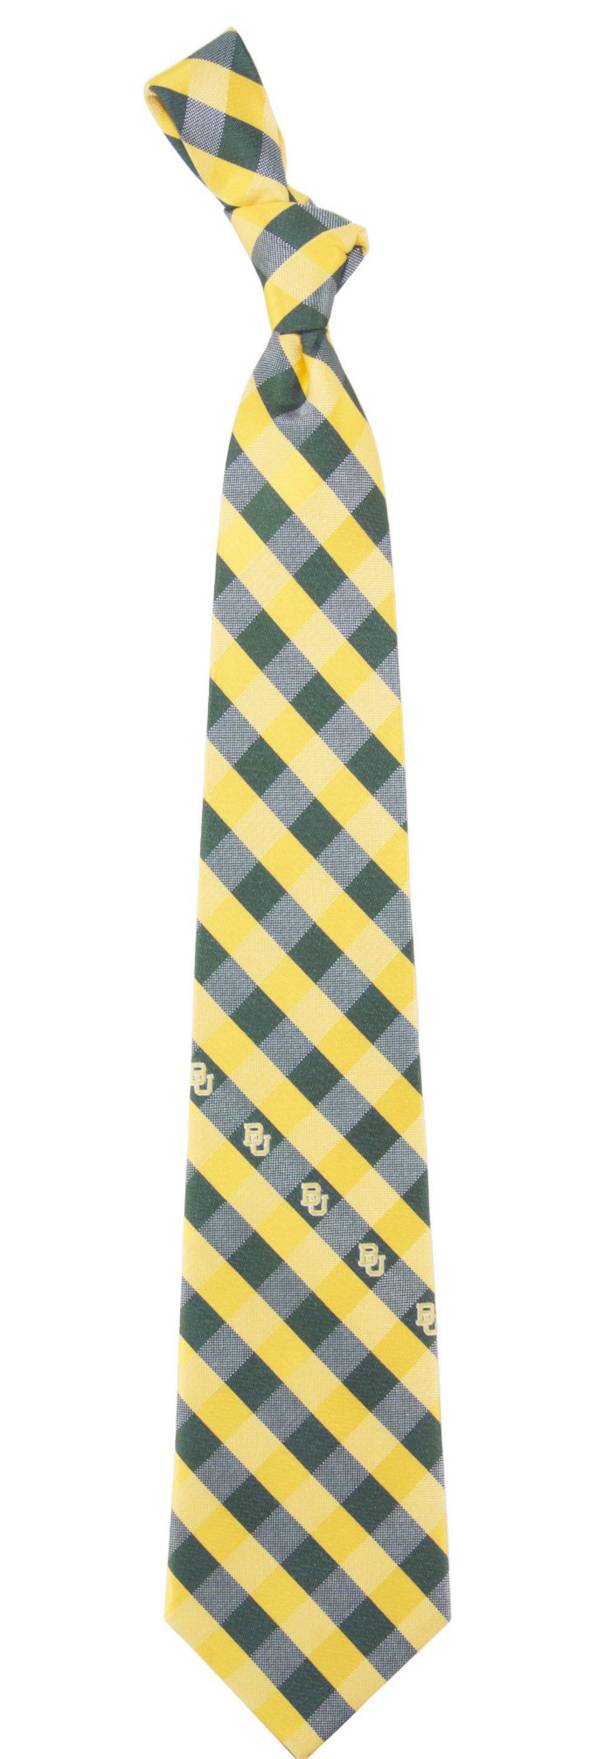 Eagles Wings Baylor Bears Check Necktie product image